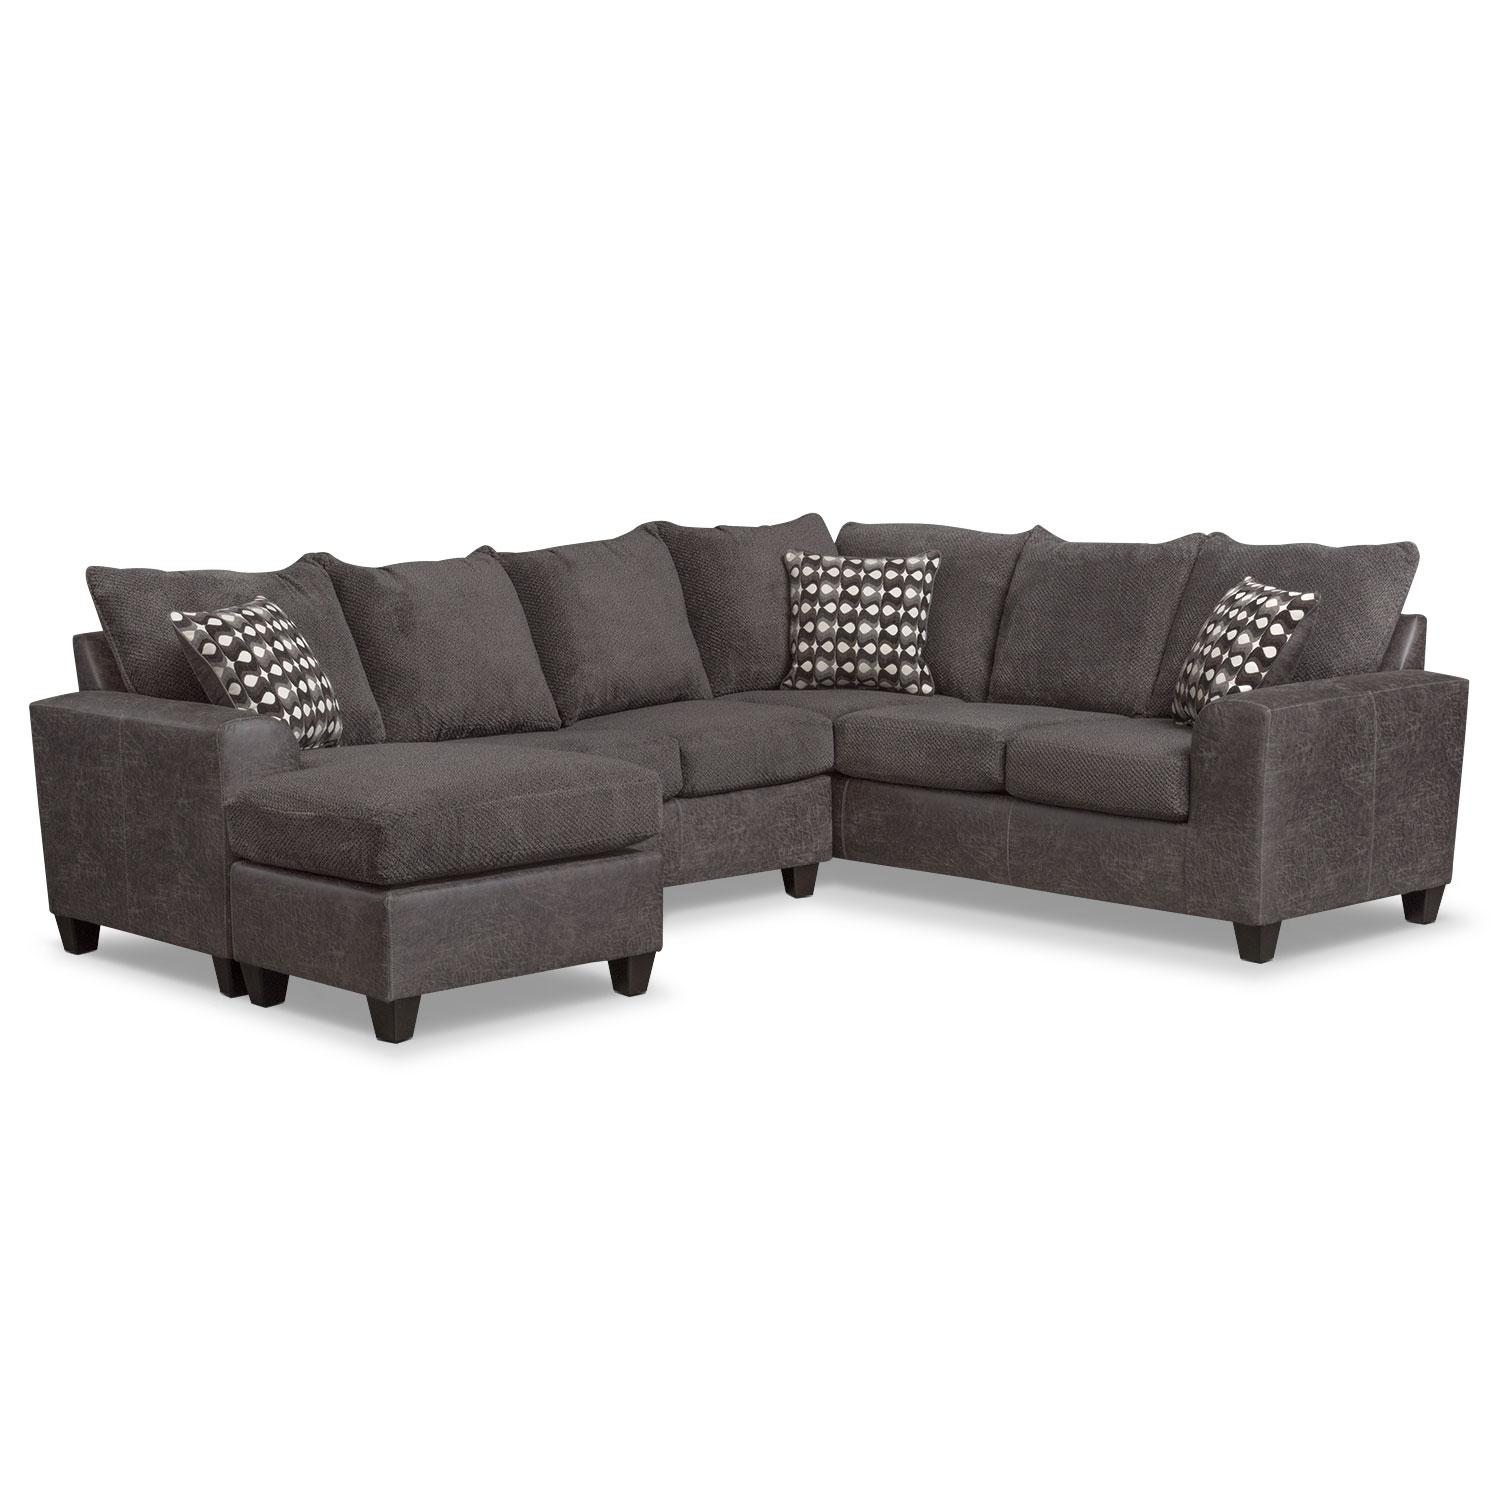 Brando 3 Piece Sectional With Modular Chaise – Smoke | American Throughout Aurora 2 Piece Sectionals (Image 10 of 25)